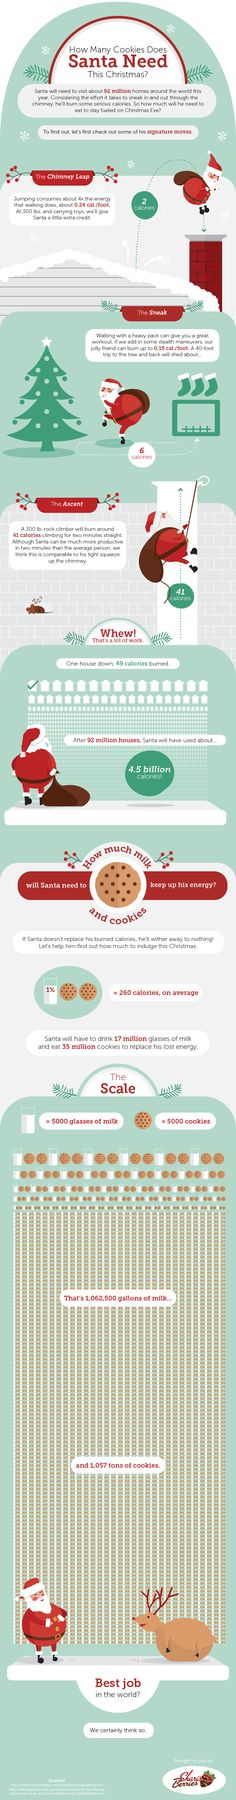 The chimney leap. The Christmas tree sneak. Santa really needs to carb load this Christmas Eve, on milk and cookies, of course. Christmas Facts, Christmas Trivia, Christmas History, Christmas Mix, Christmas Activities, Christmas Pictures, All Things Christmas, Vintage Christmas, Christmas Holidays